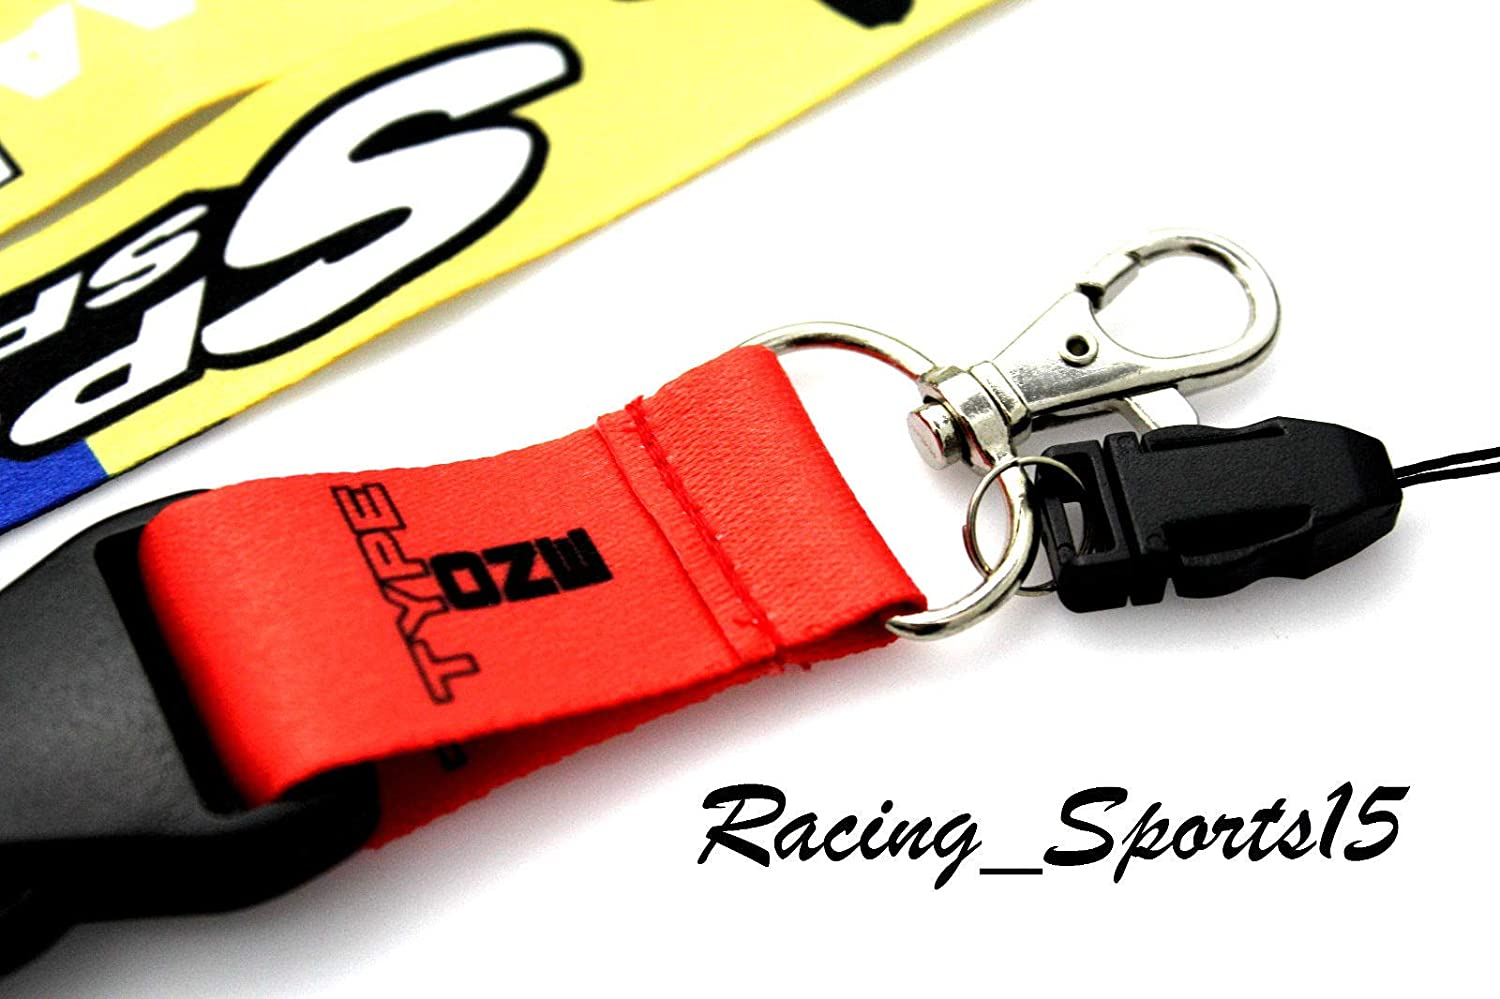 Amazon.com: JDM Spoon Sports Lanyard Keychain Neck Strap ...